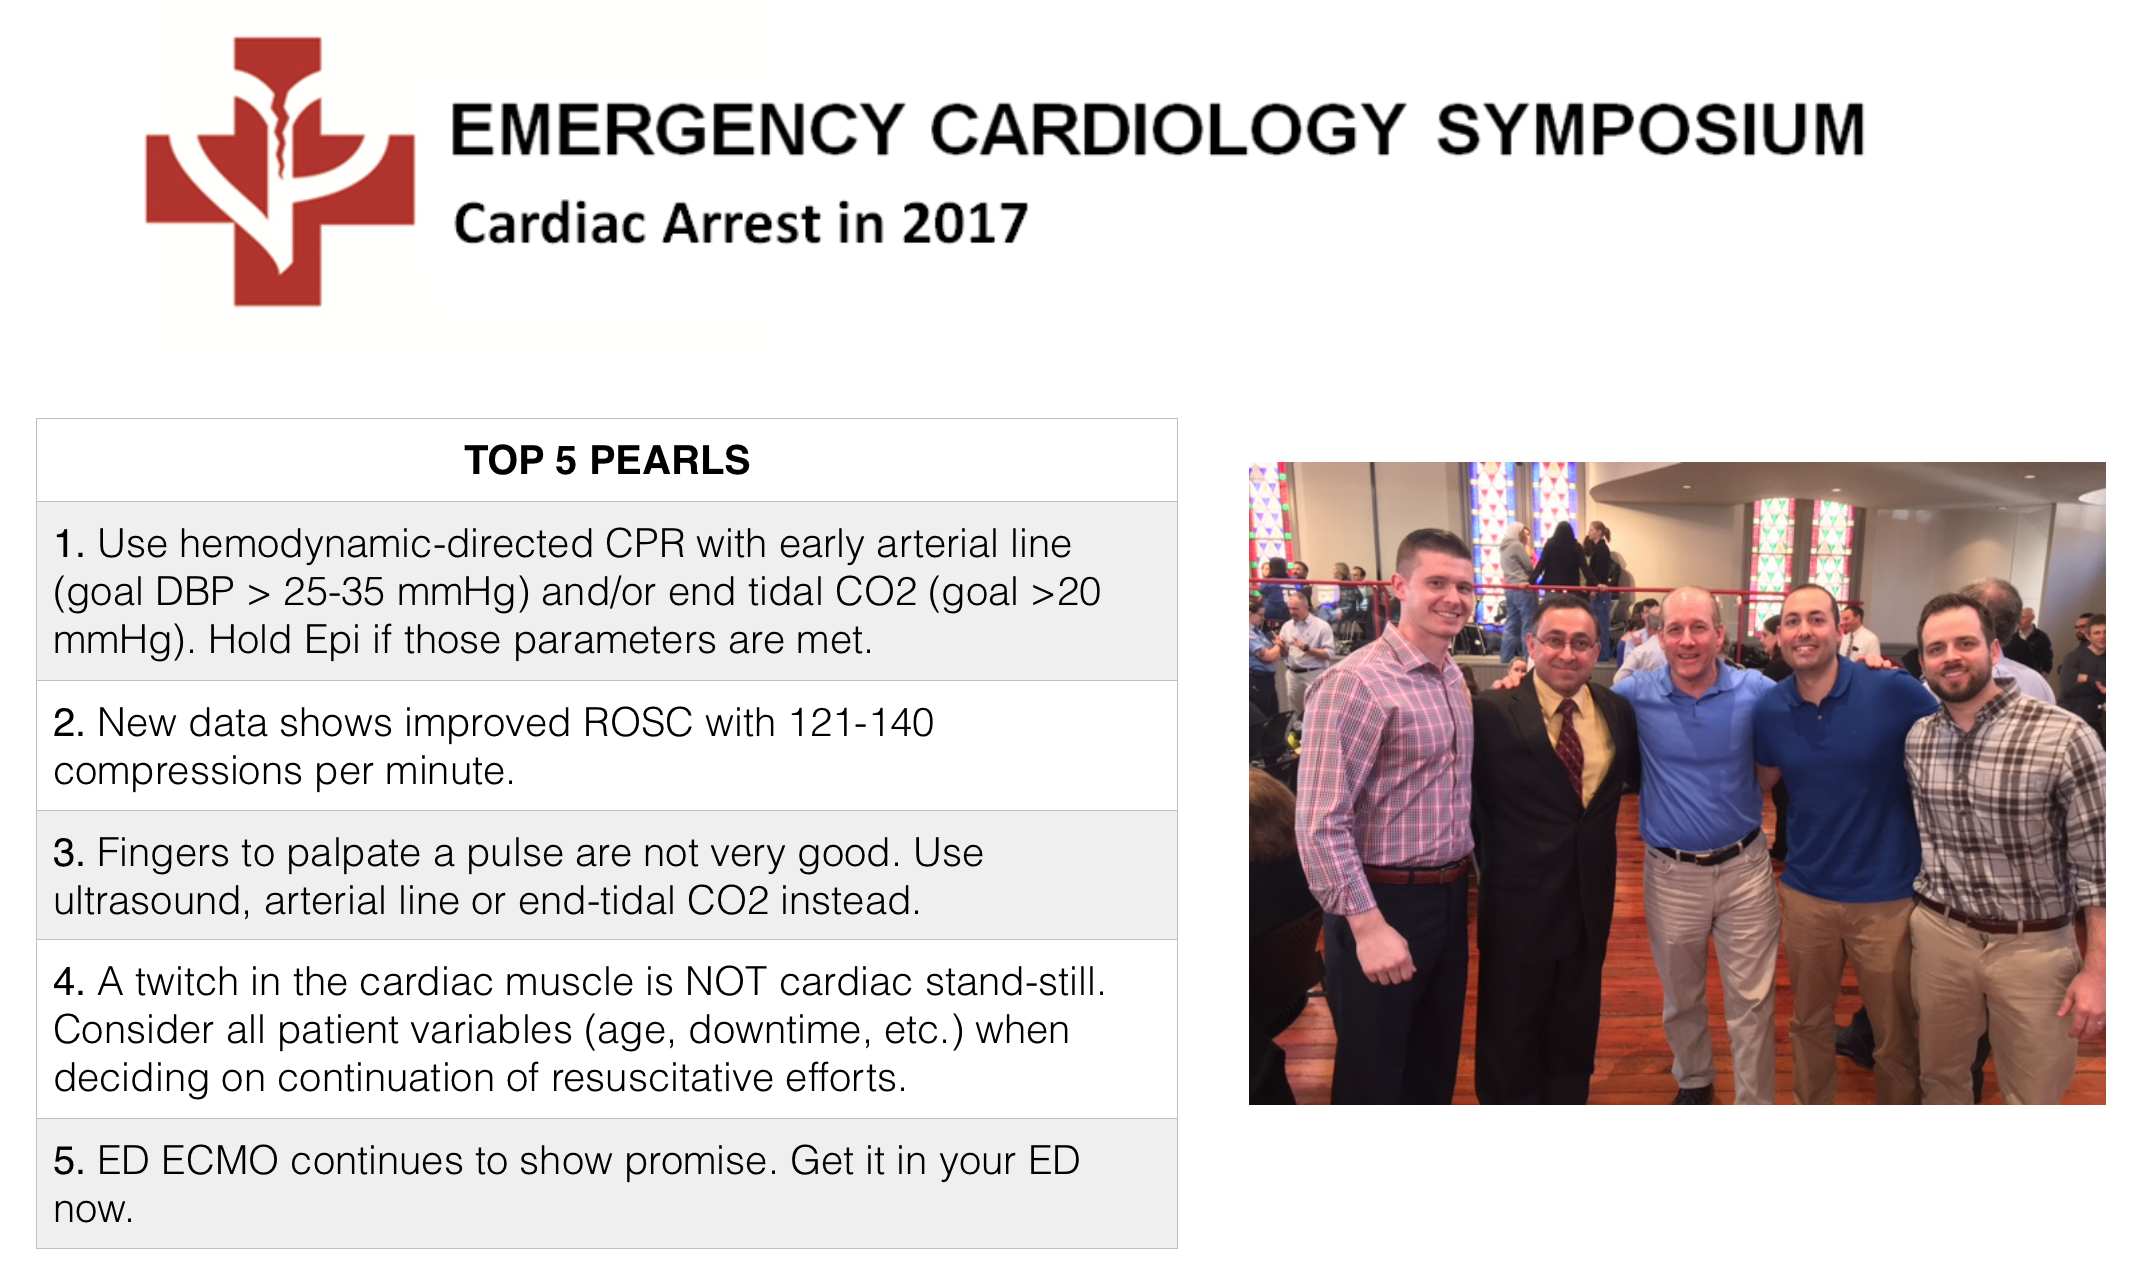 Take Home Pearls from 2017 UM EM Cardiac Arrest Symposium